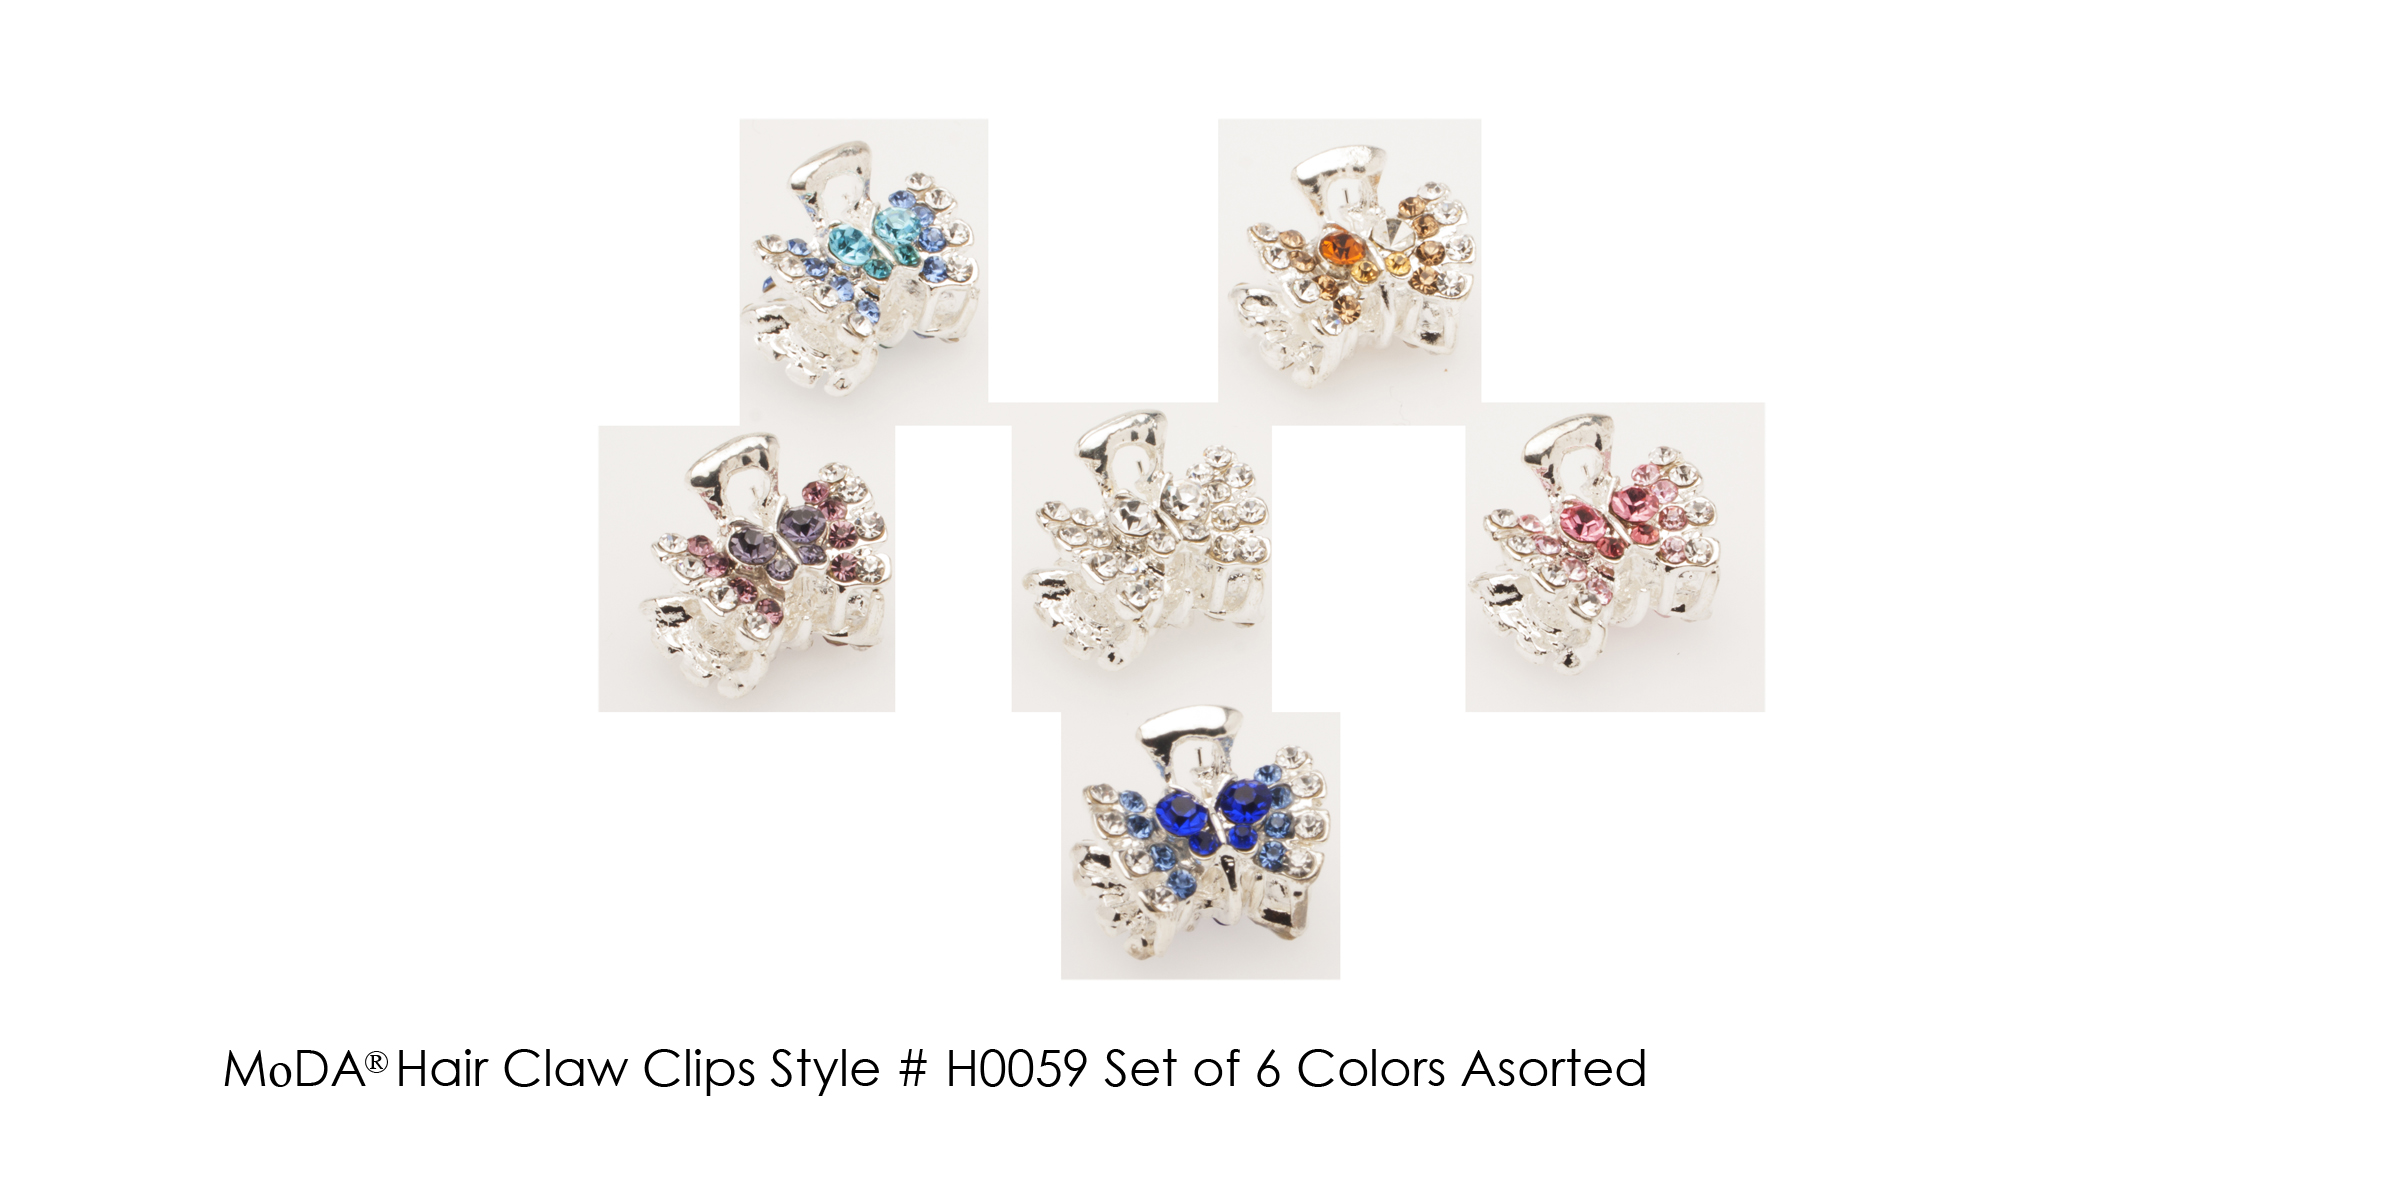 MoDA Hair Claw Clips Rhinestone Gem  Set of 6 Assorted Colors